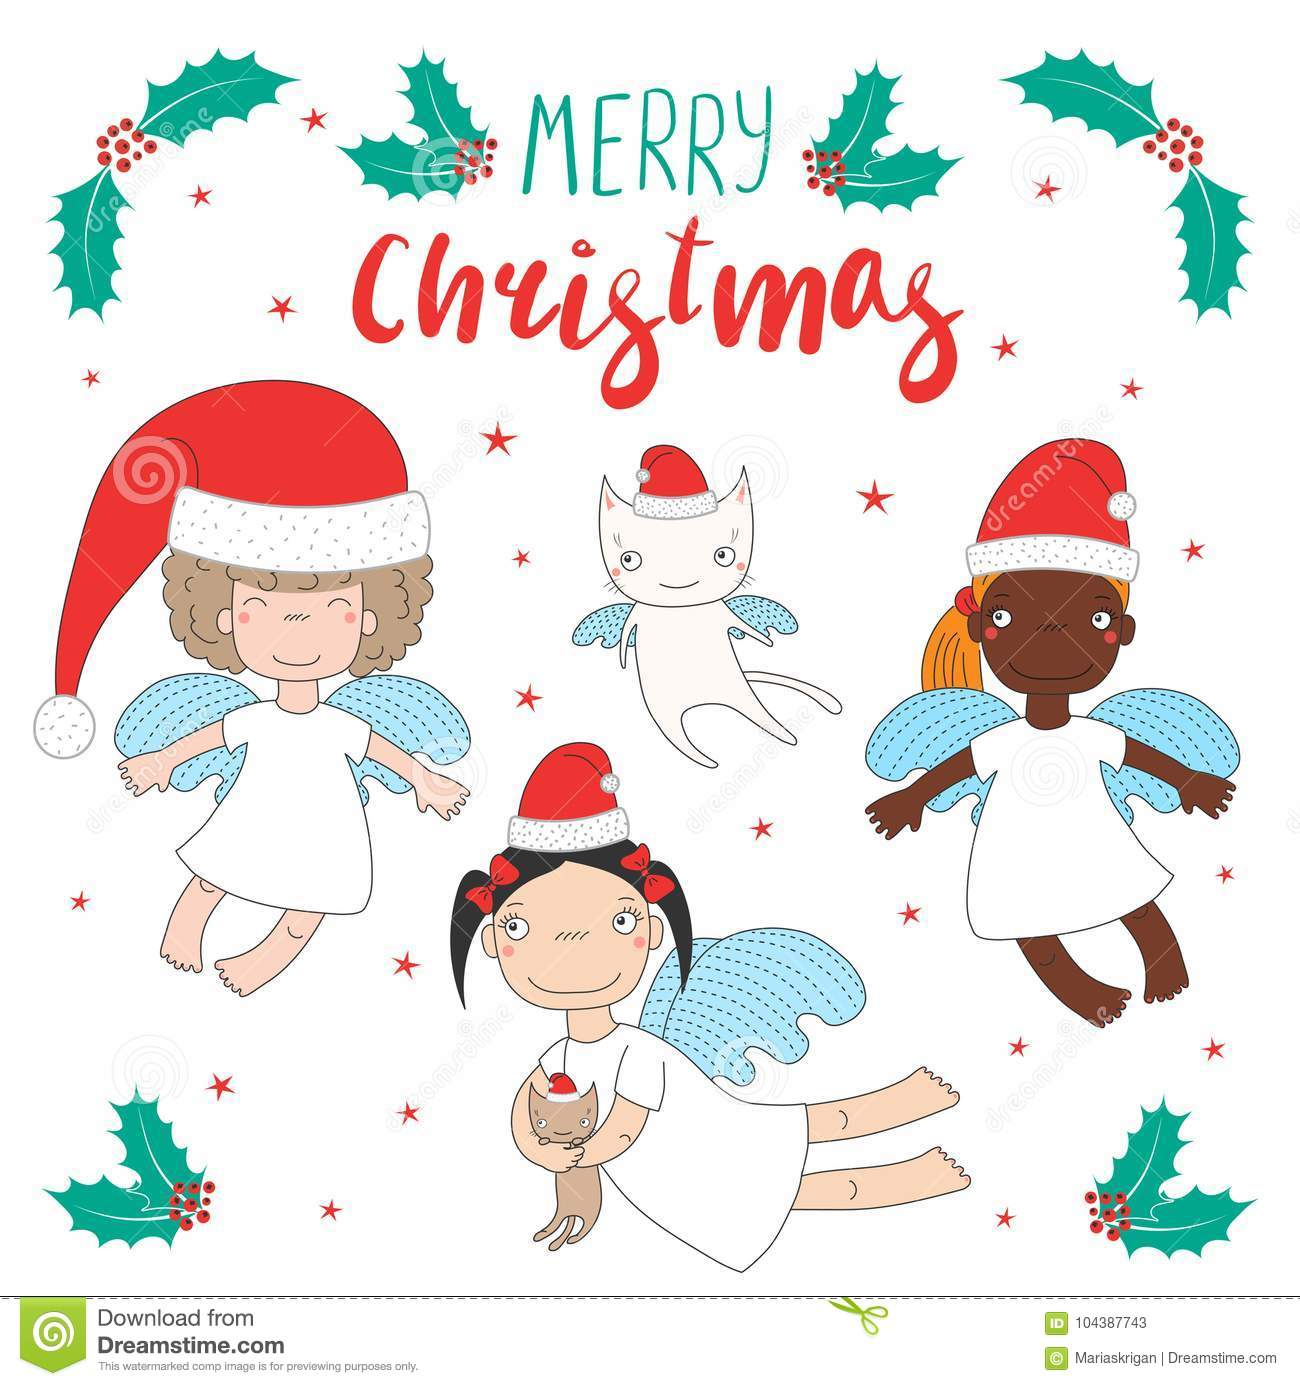 Cute Christmas angels stock vector. Illustration of funny - 104387743